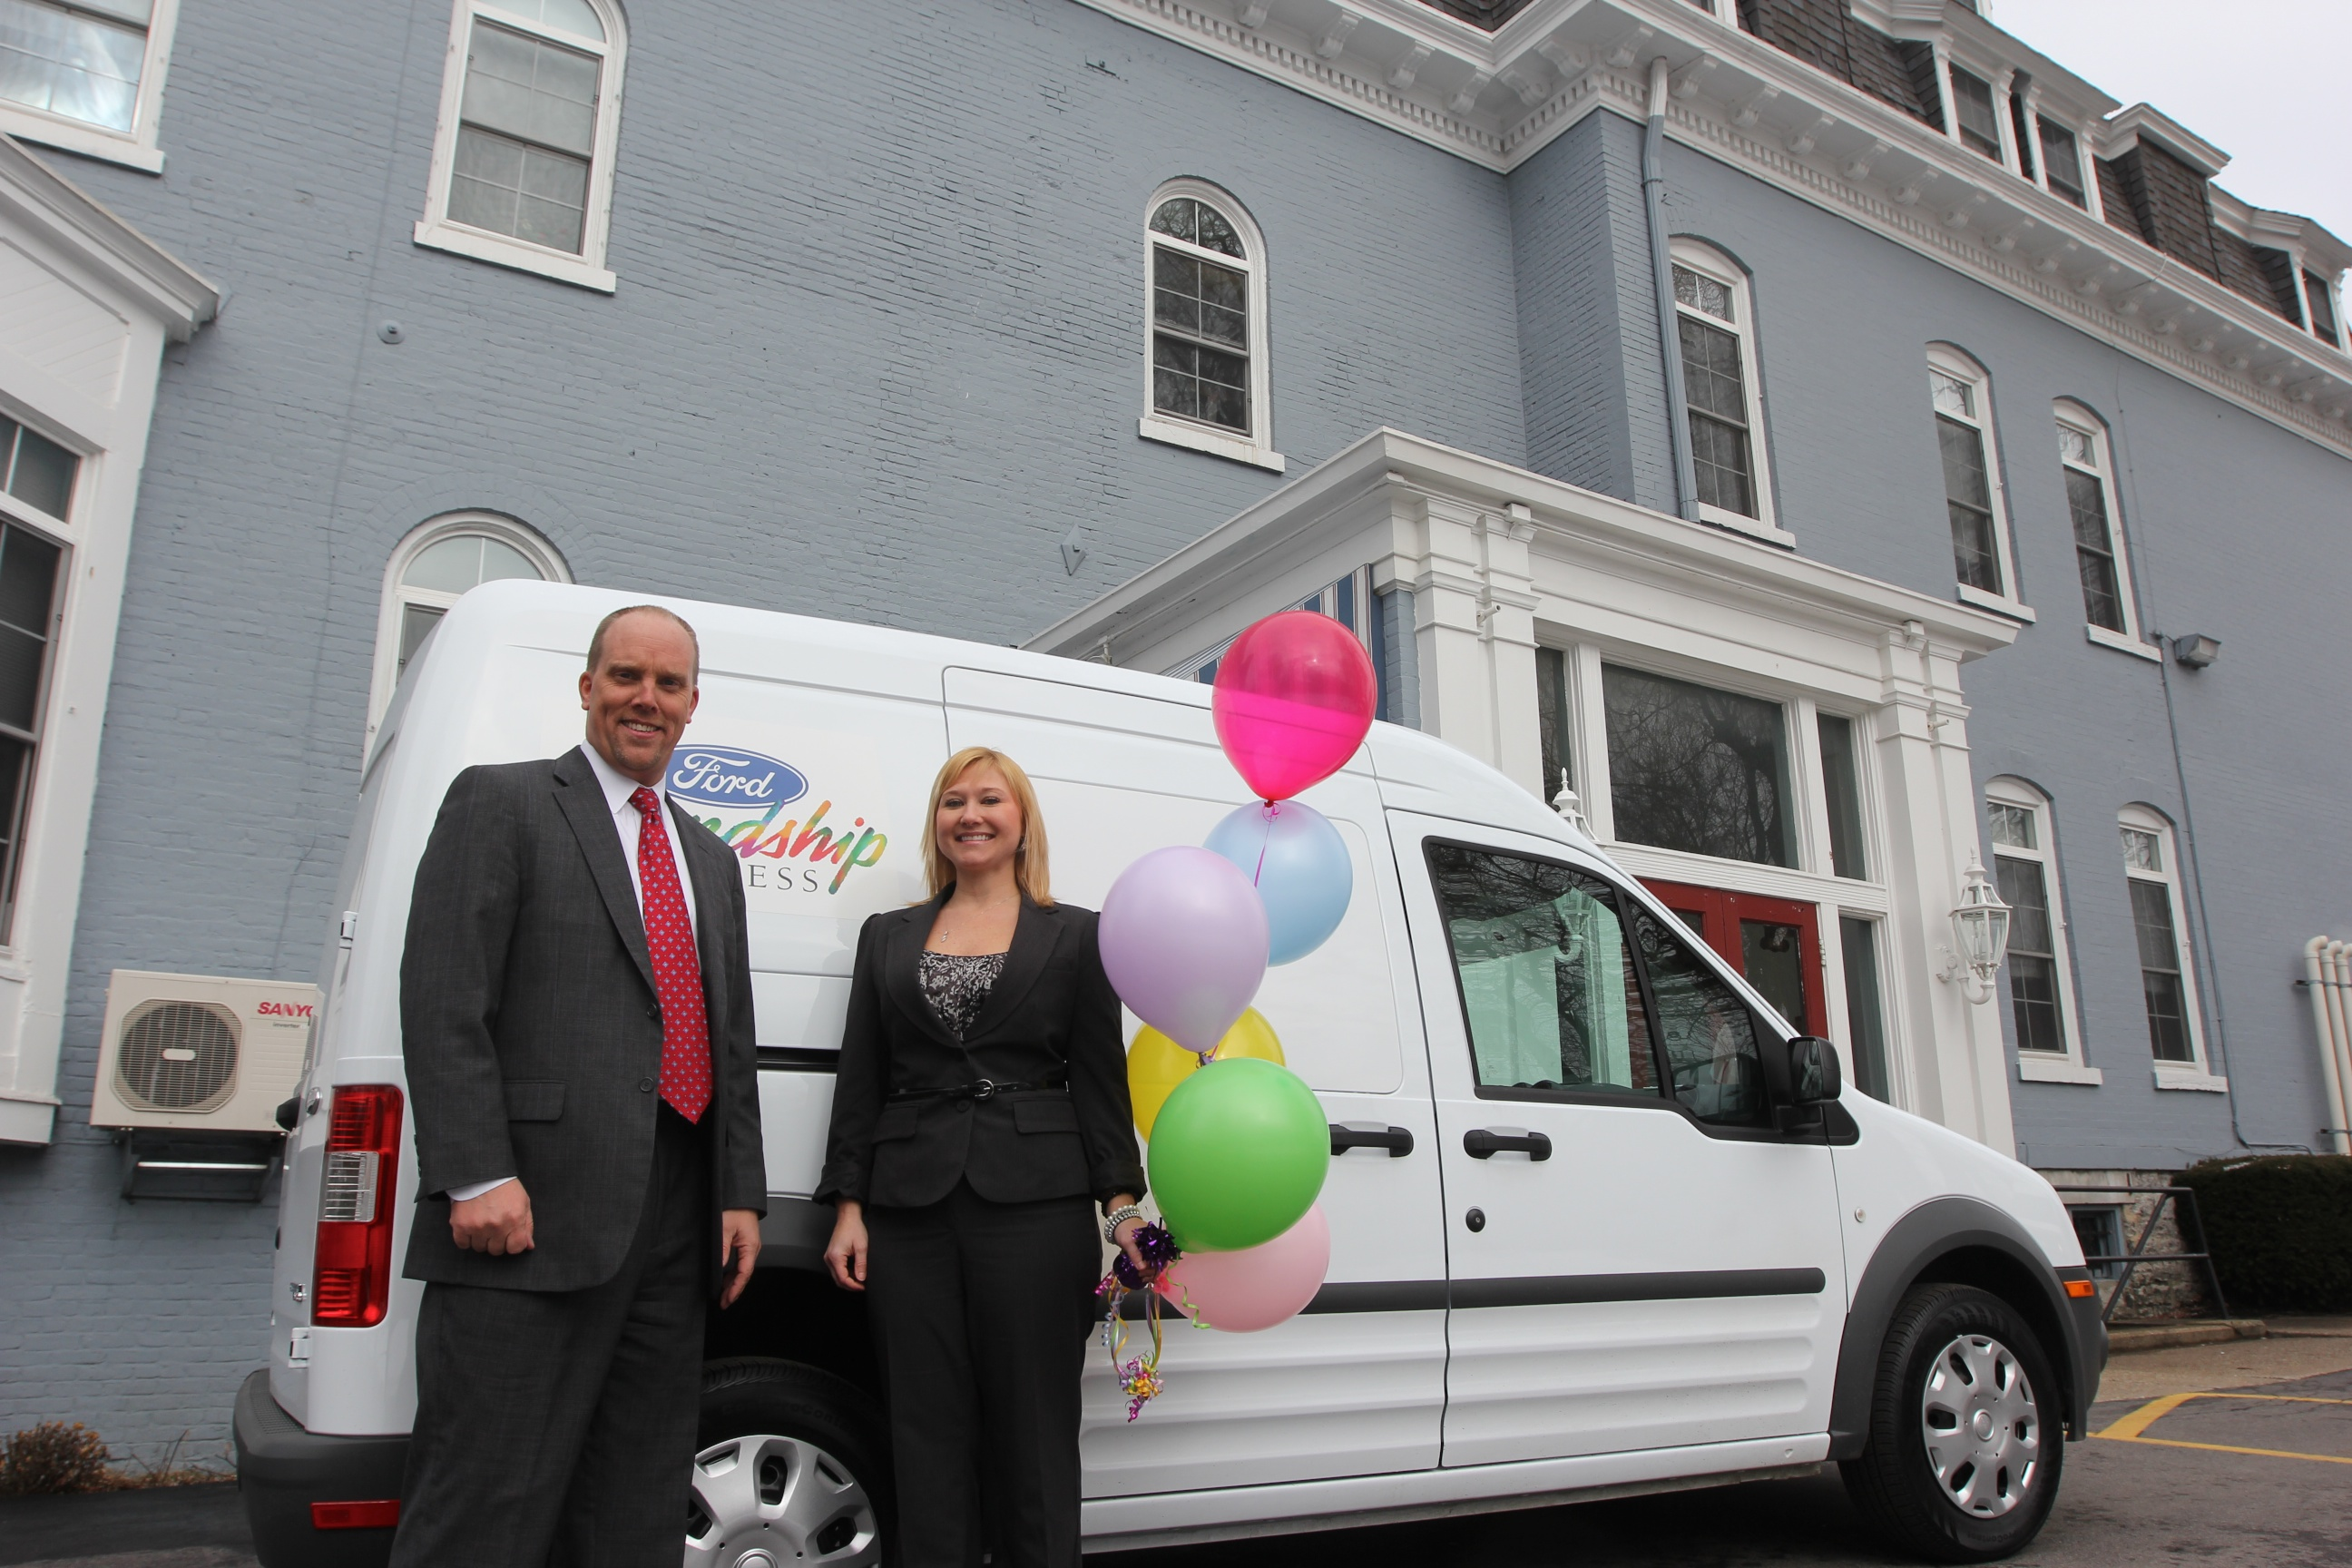 Mike Helbringer and Lisa Schlenker of The Bristol Home pose with their new 2012 Ford Friendship Express van